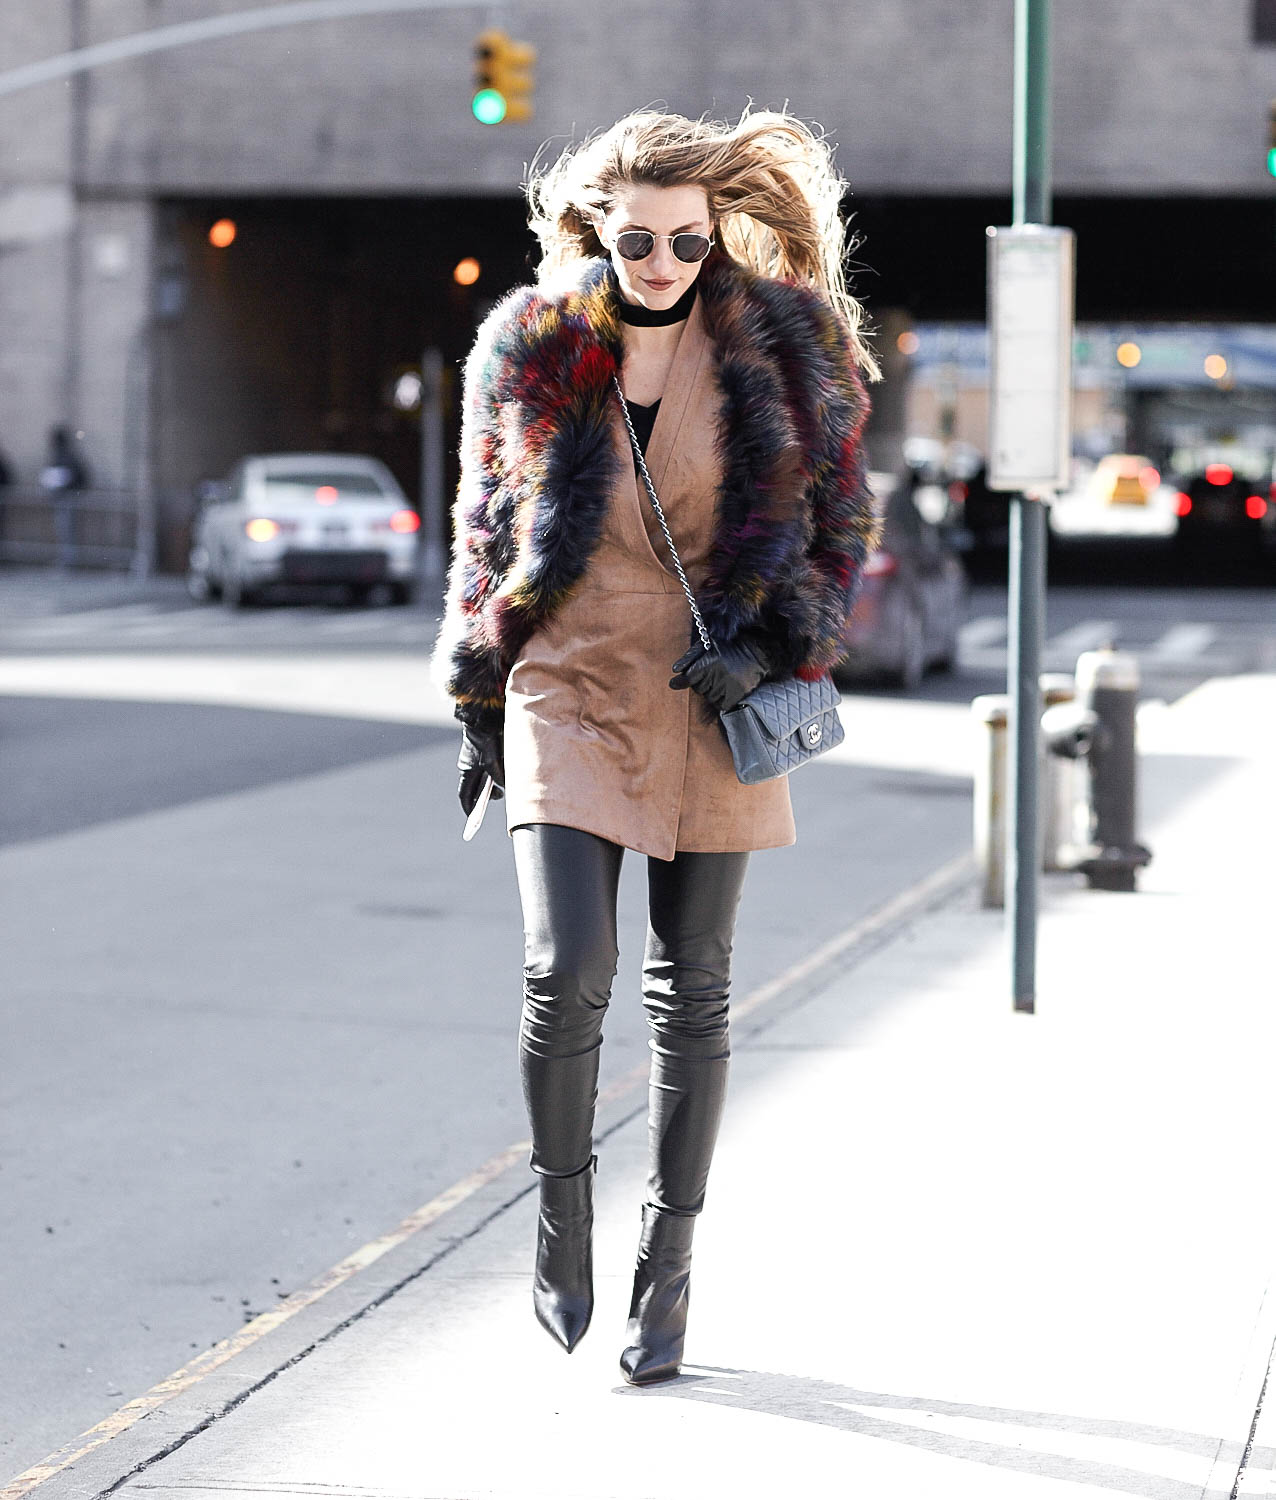 nyfw street style, dressed for dreams